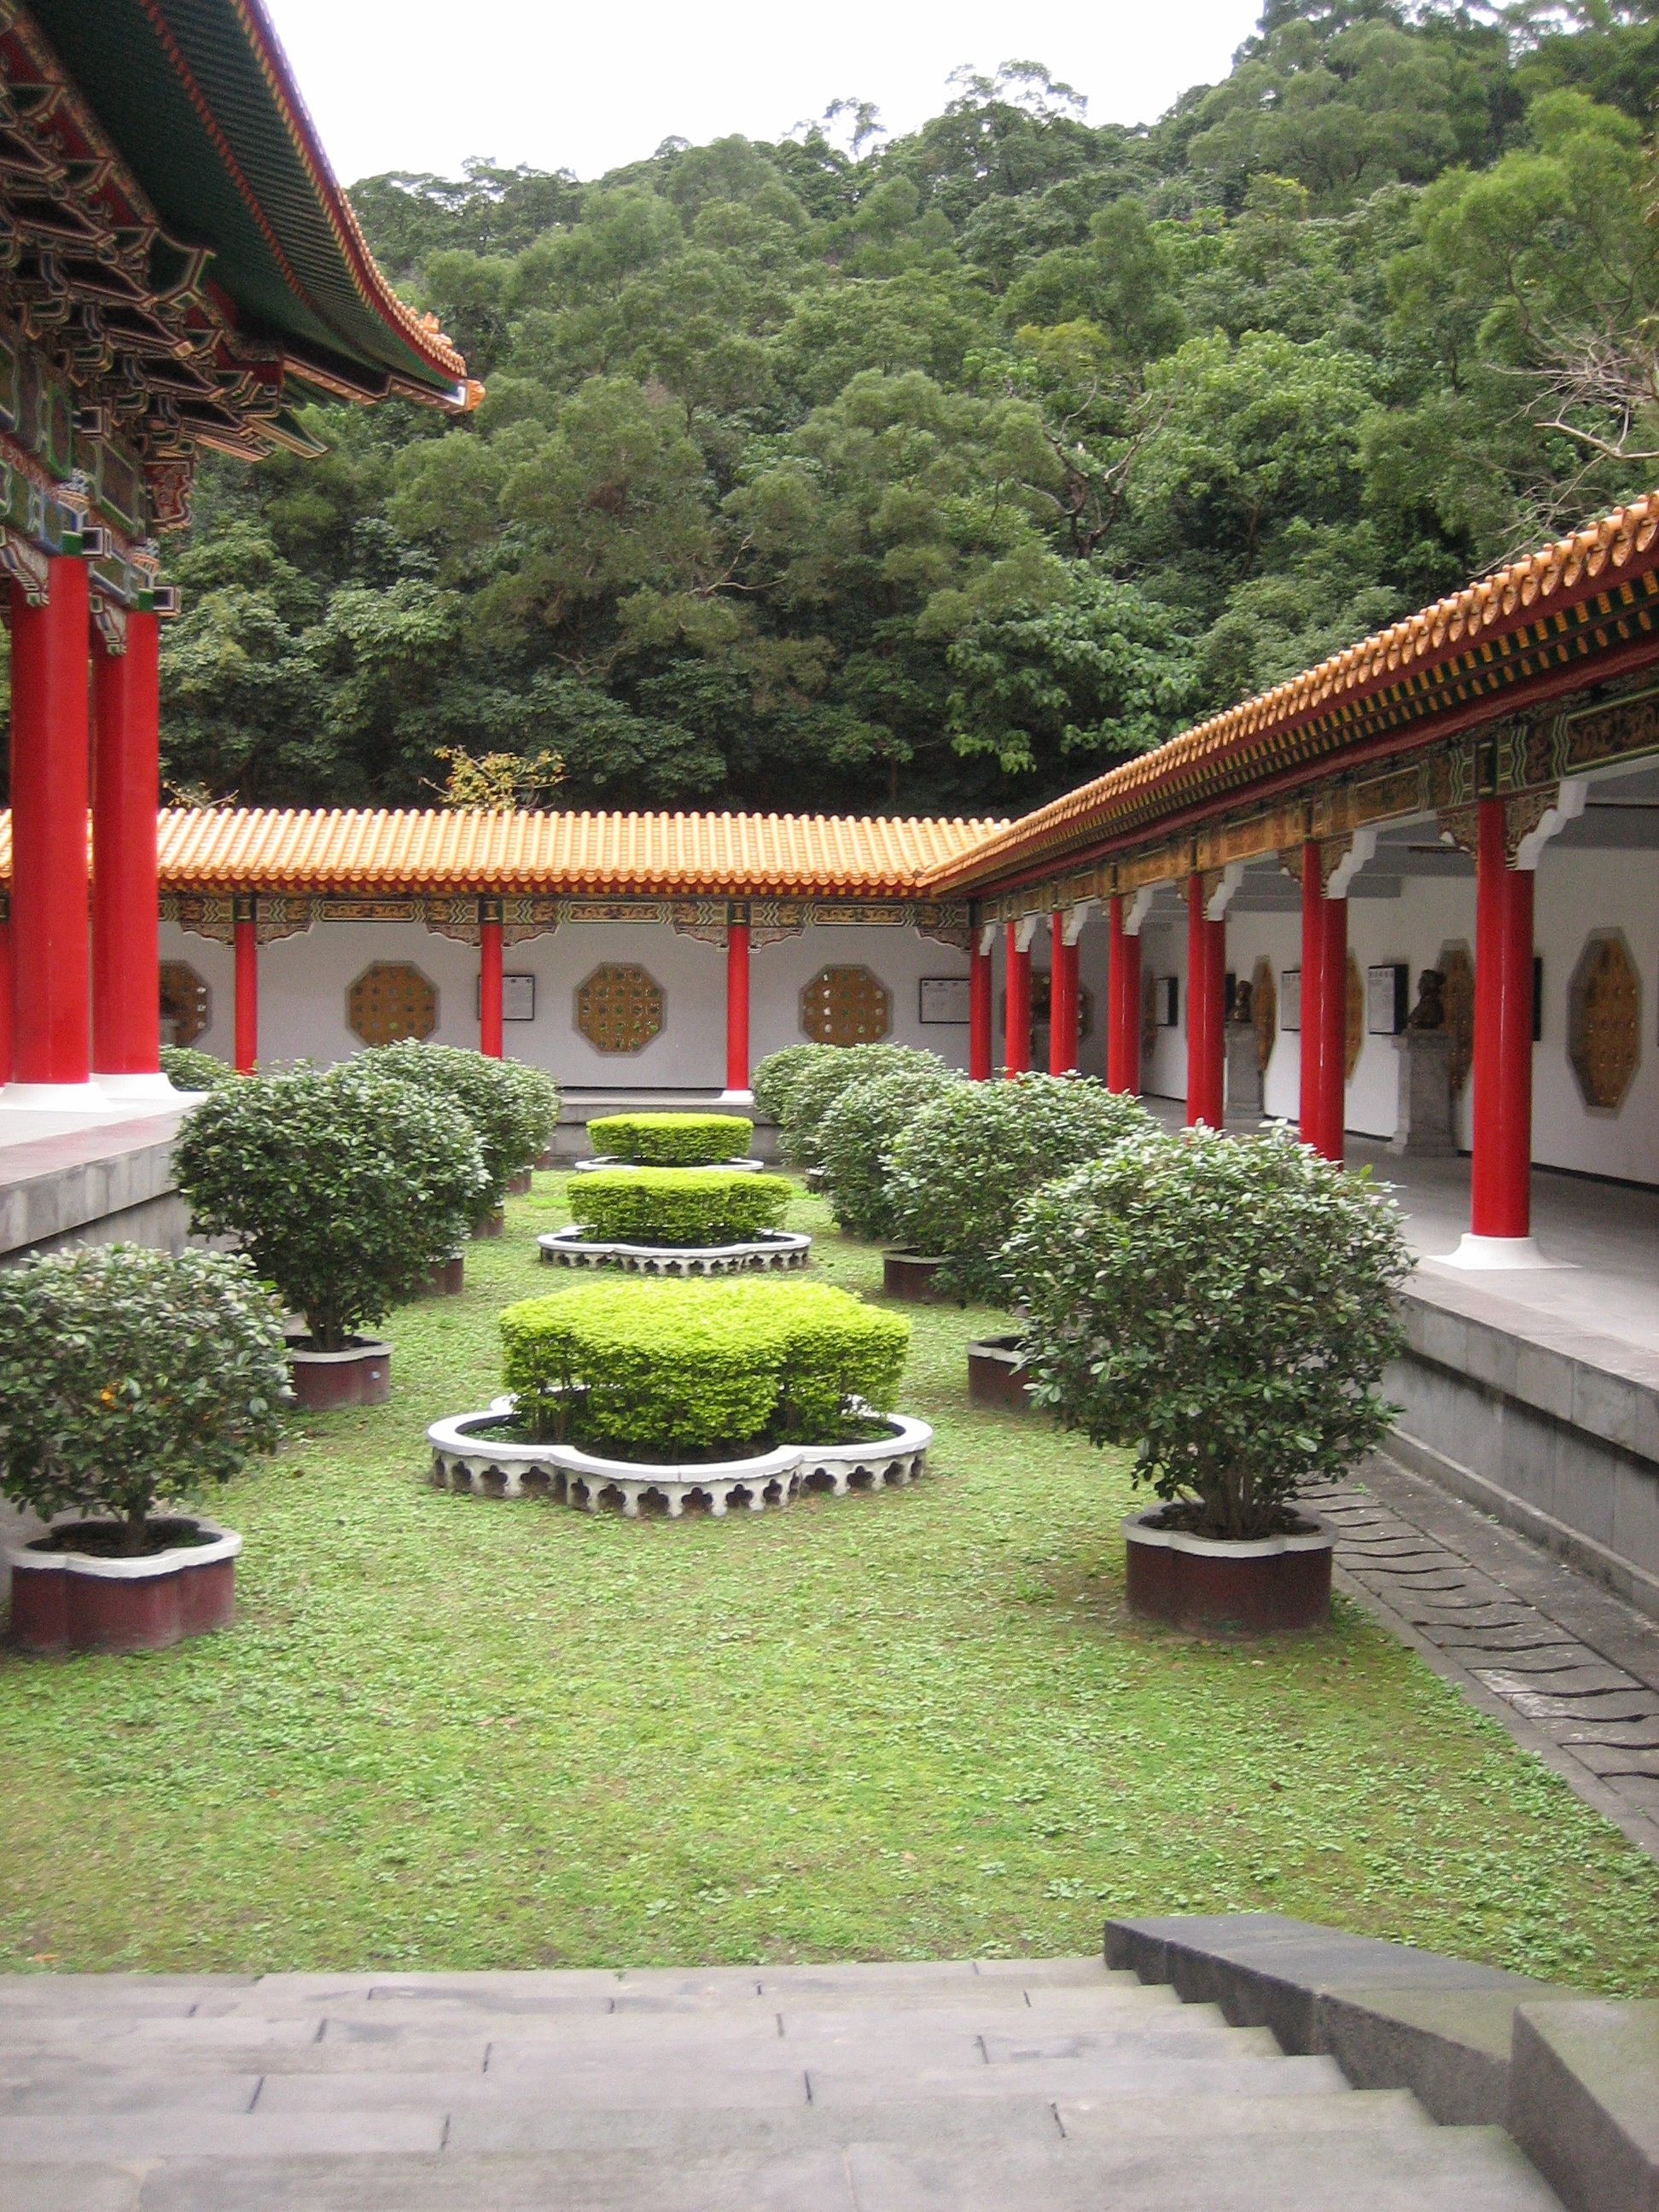 Martyr's shrine garden